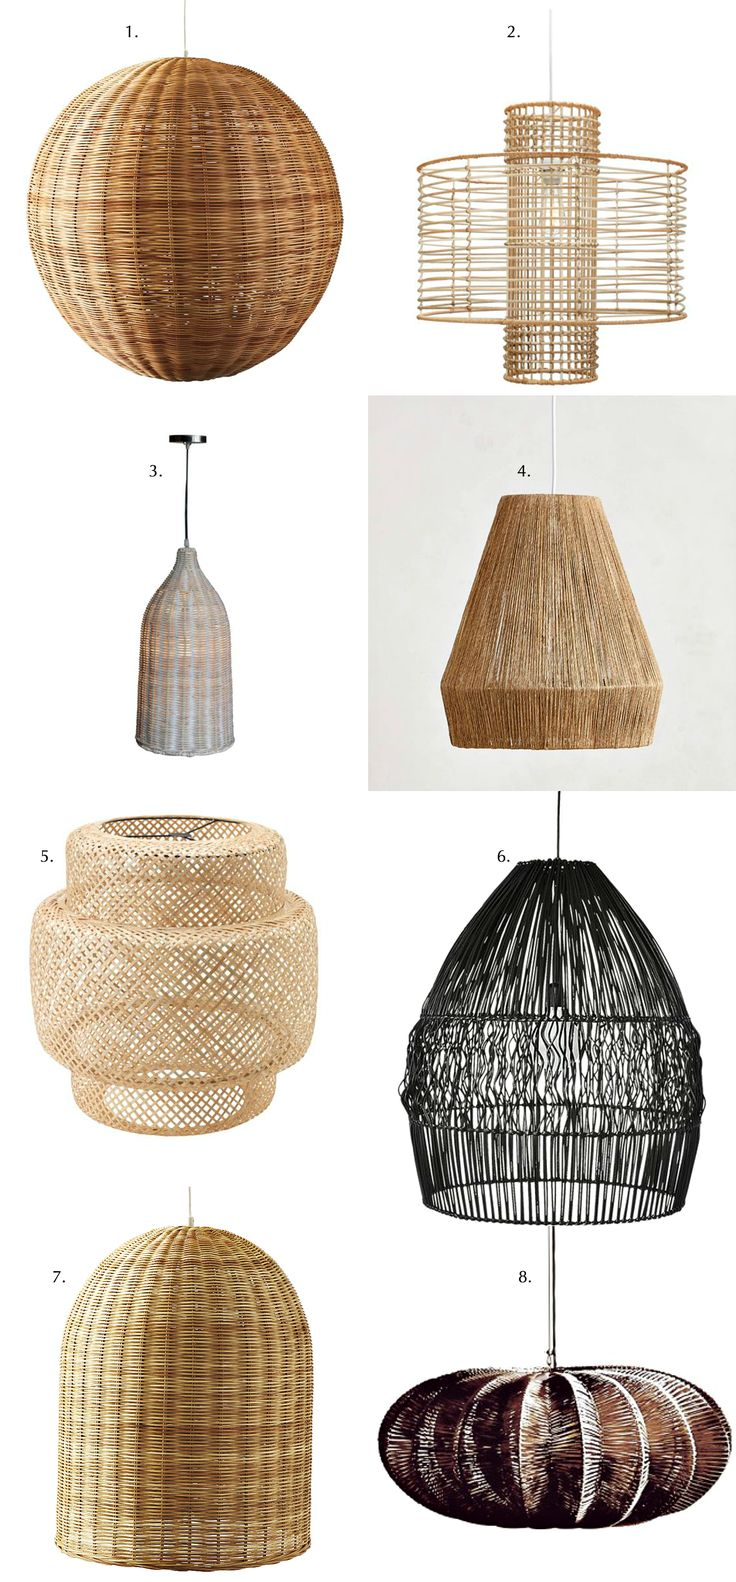 High Quality Blissful Corners: Wicker Pendant Lights || Bliss Awesome Design